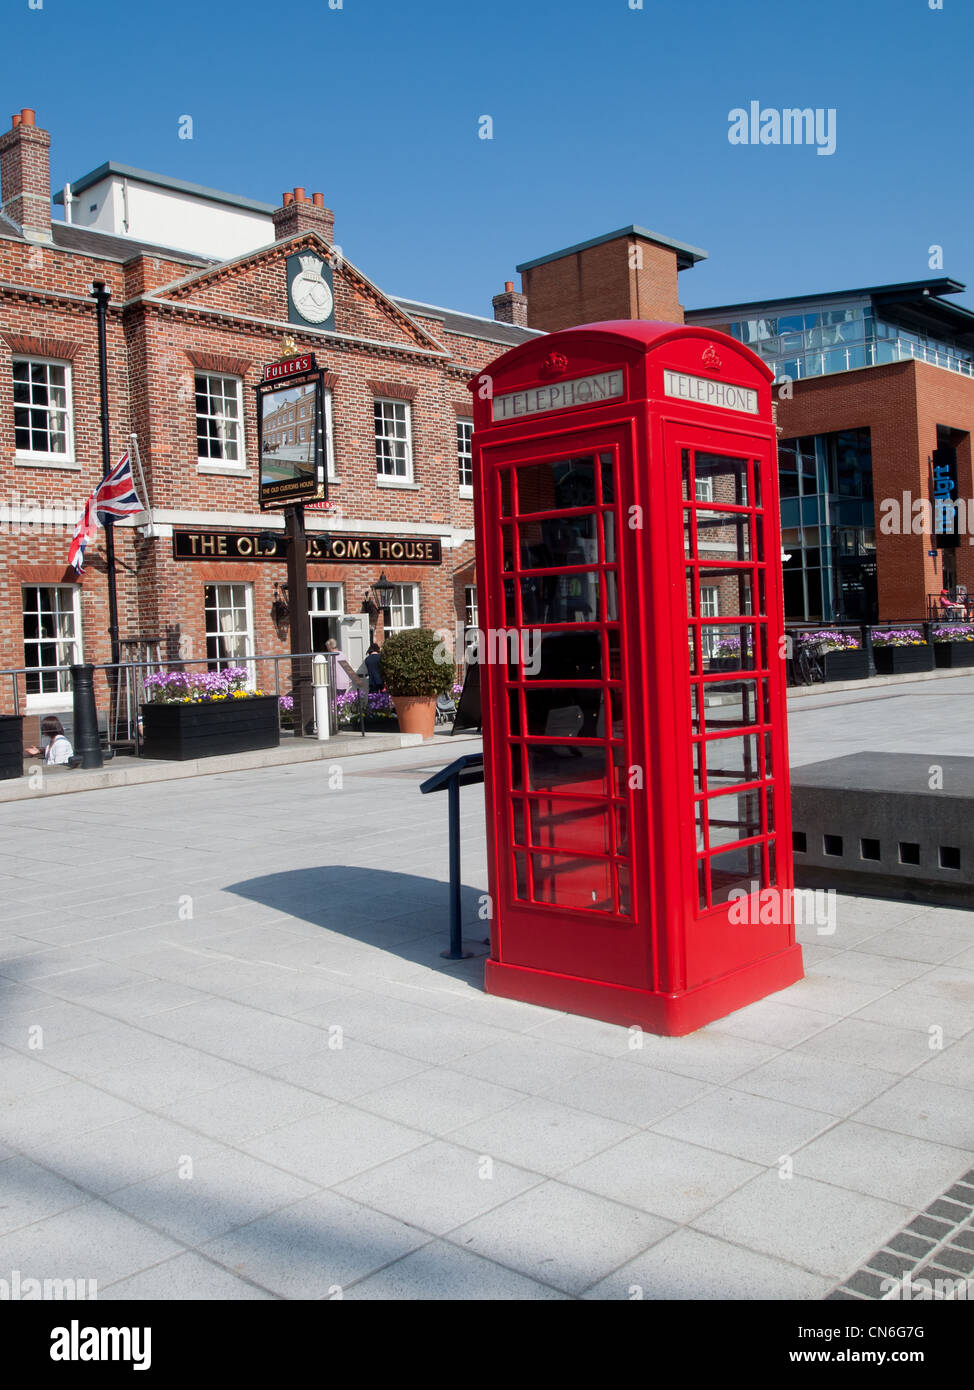 A red telephone box in front a public house in England - Stock Image